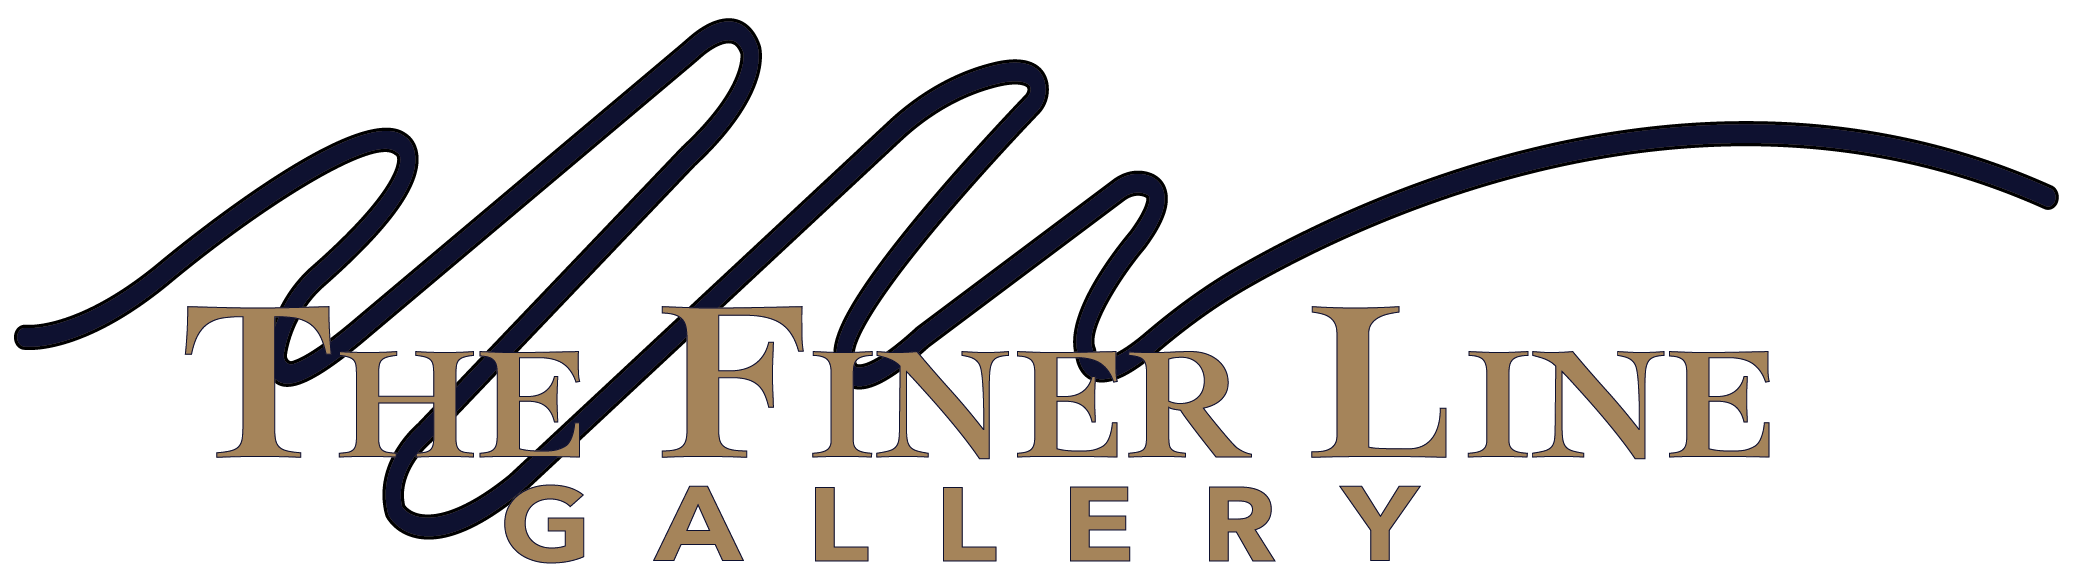 The Finer Line Gallery